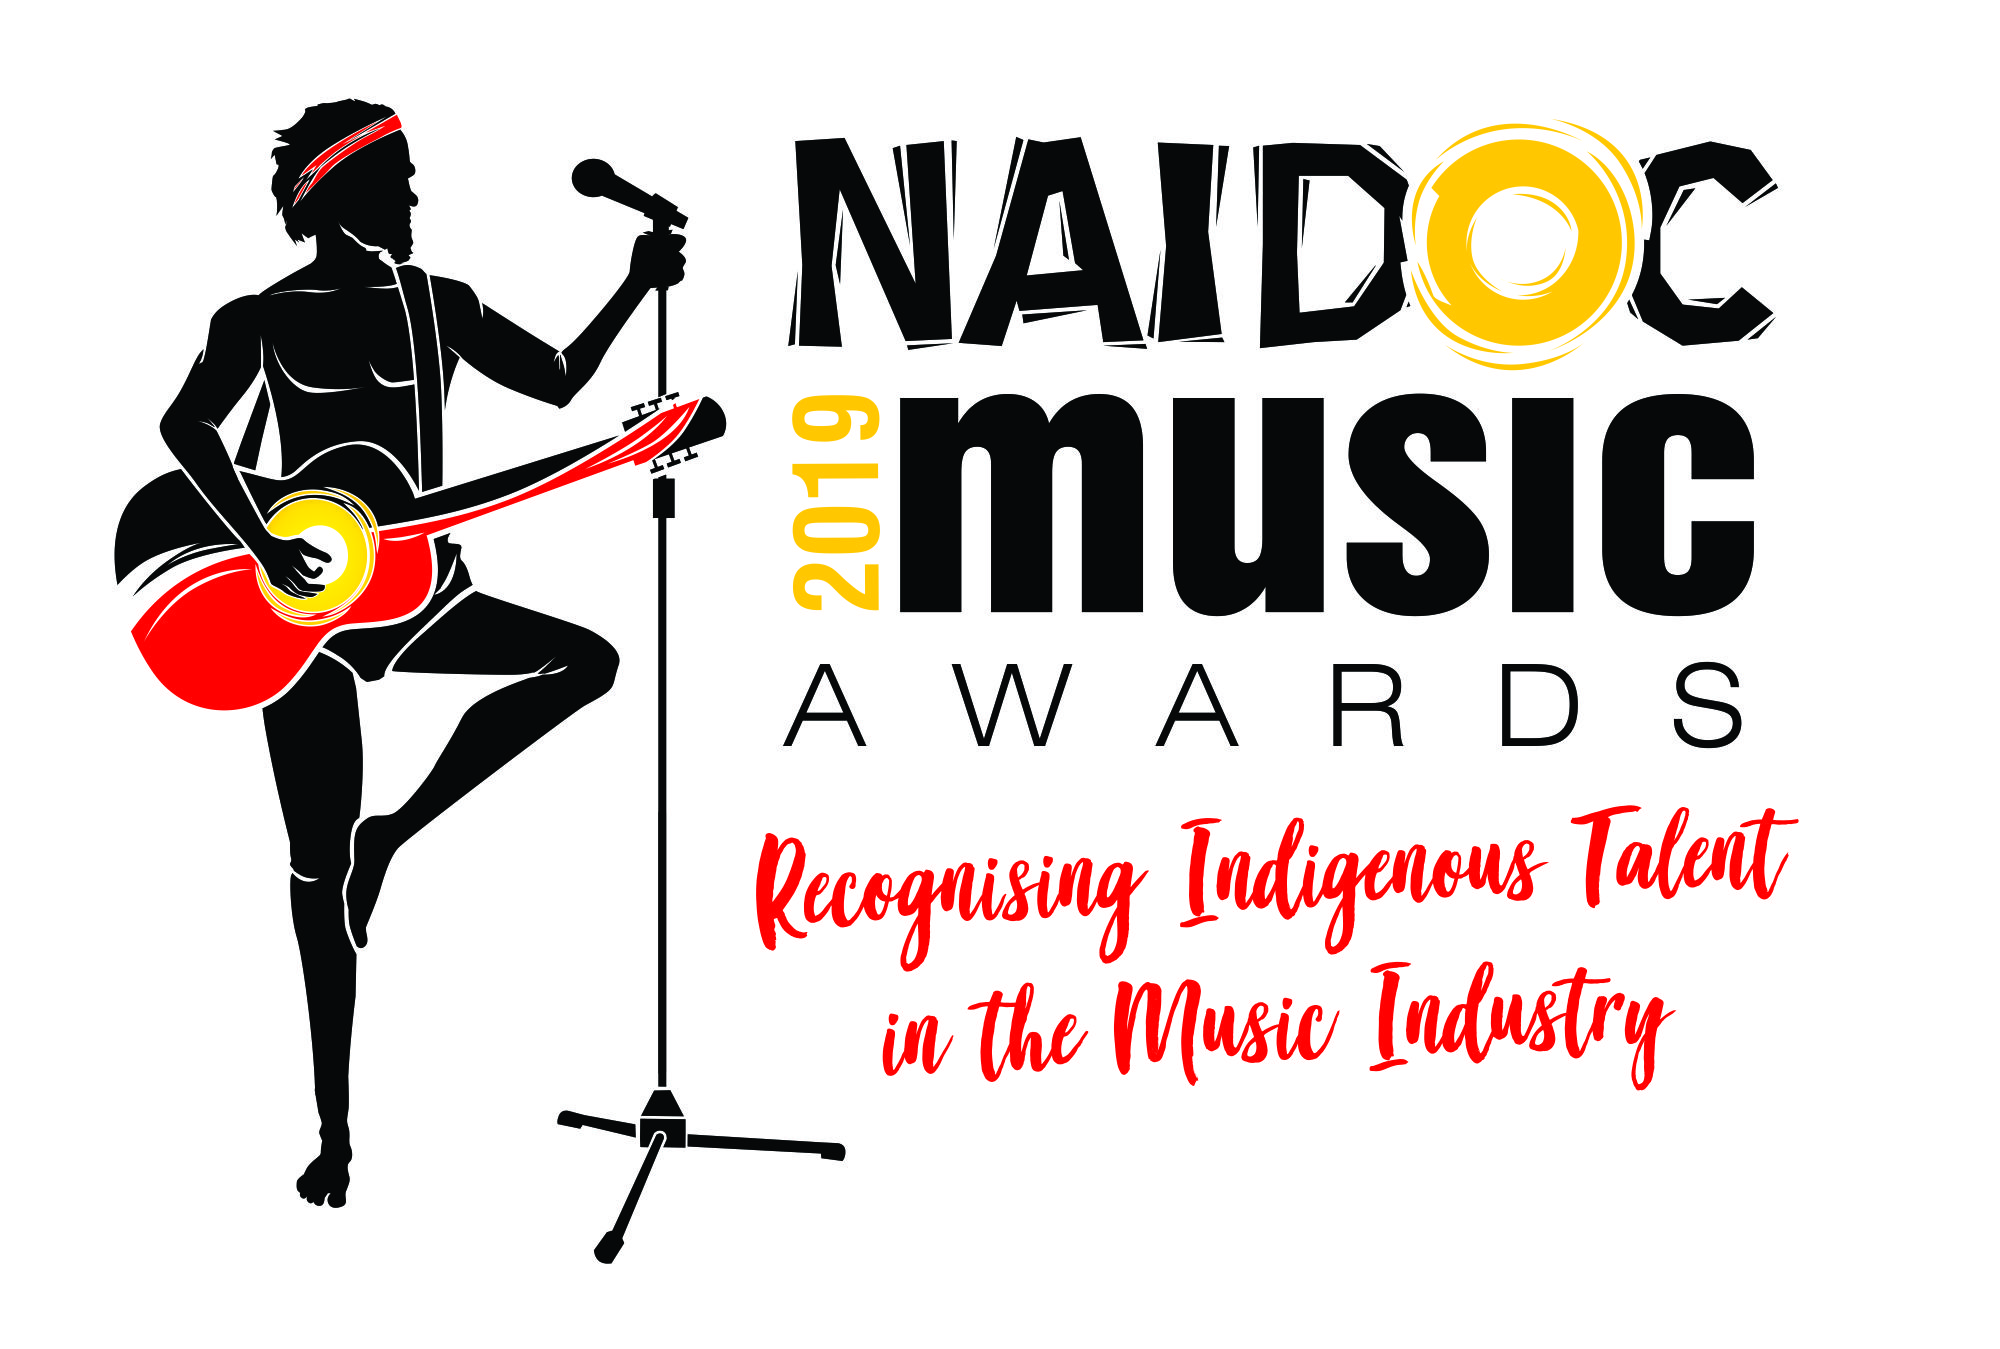 2019 NAIDOC Music Awards